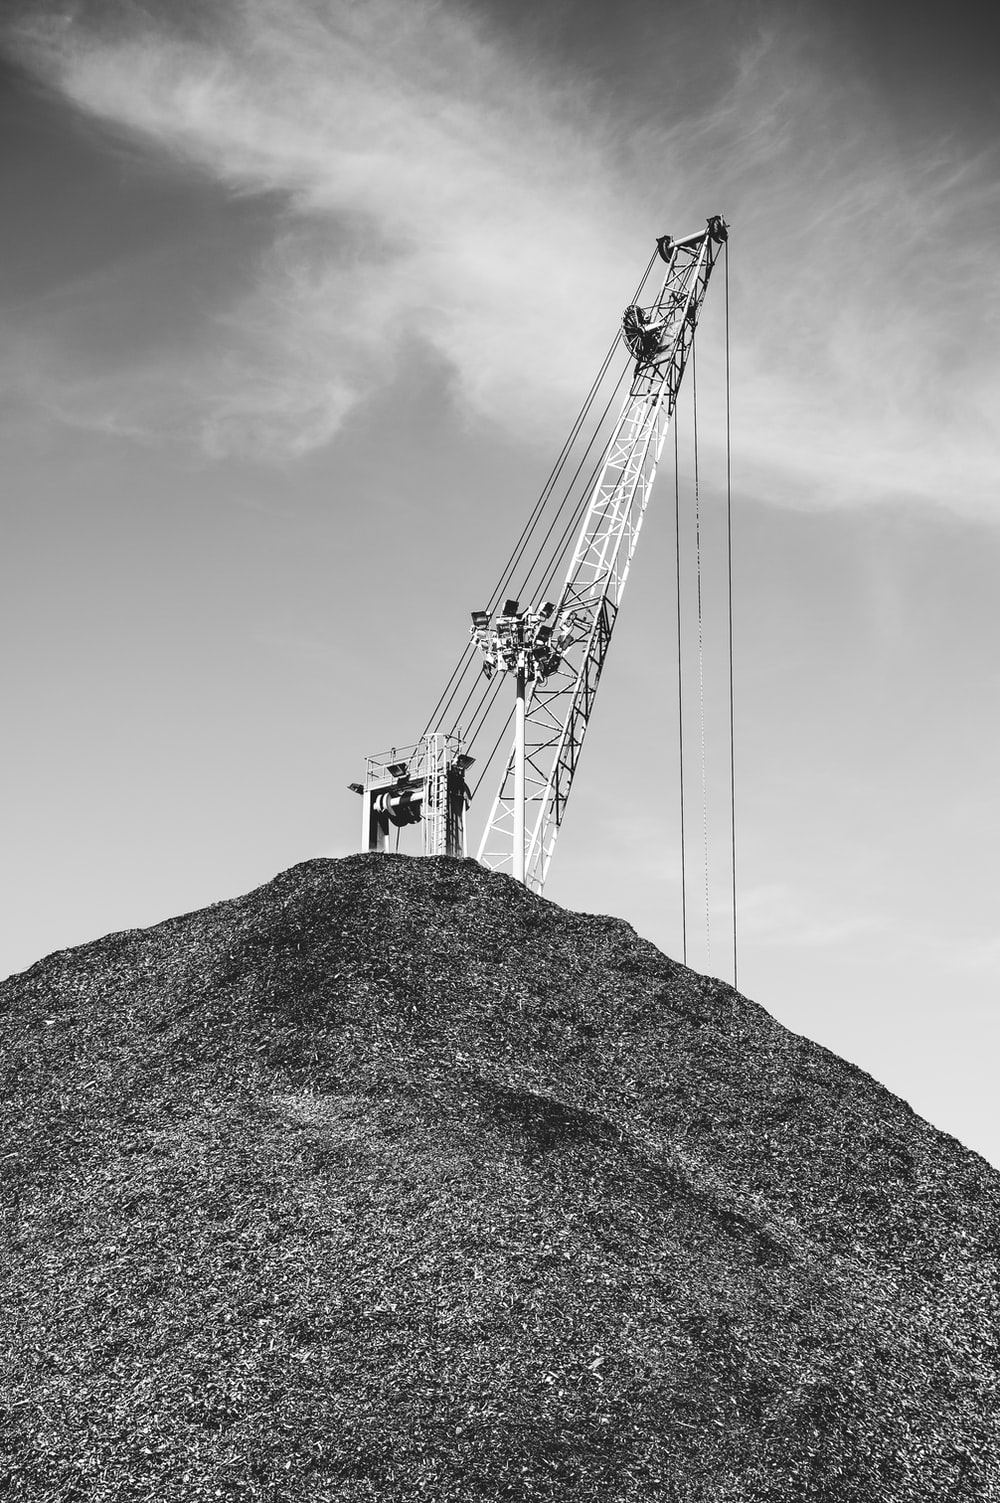 grayscale photo of crane on top of hill